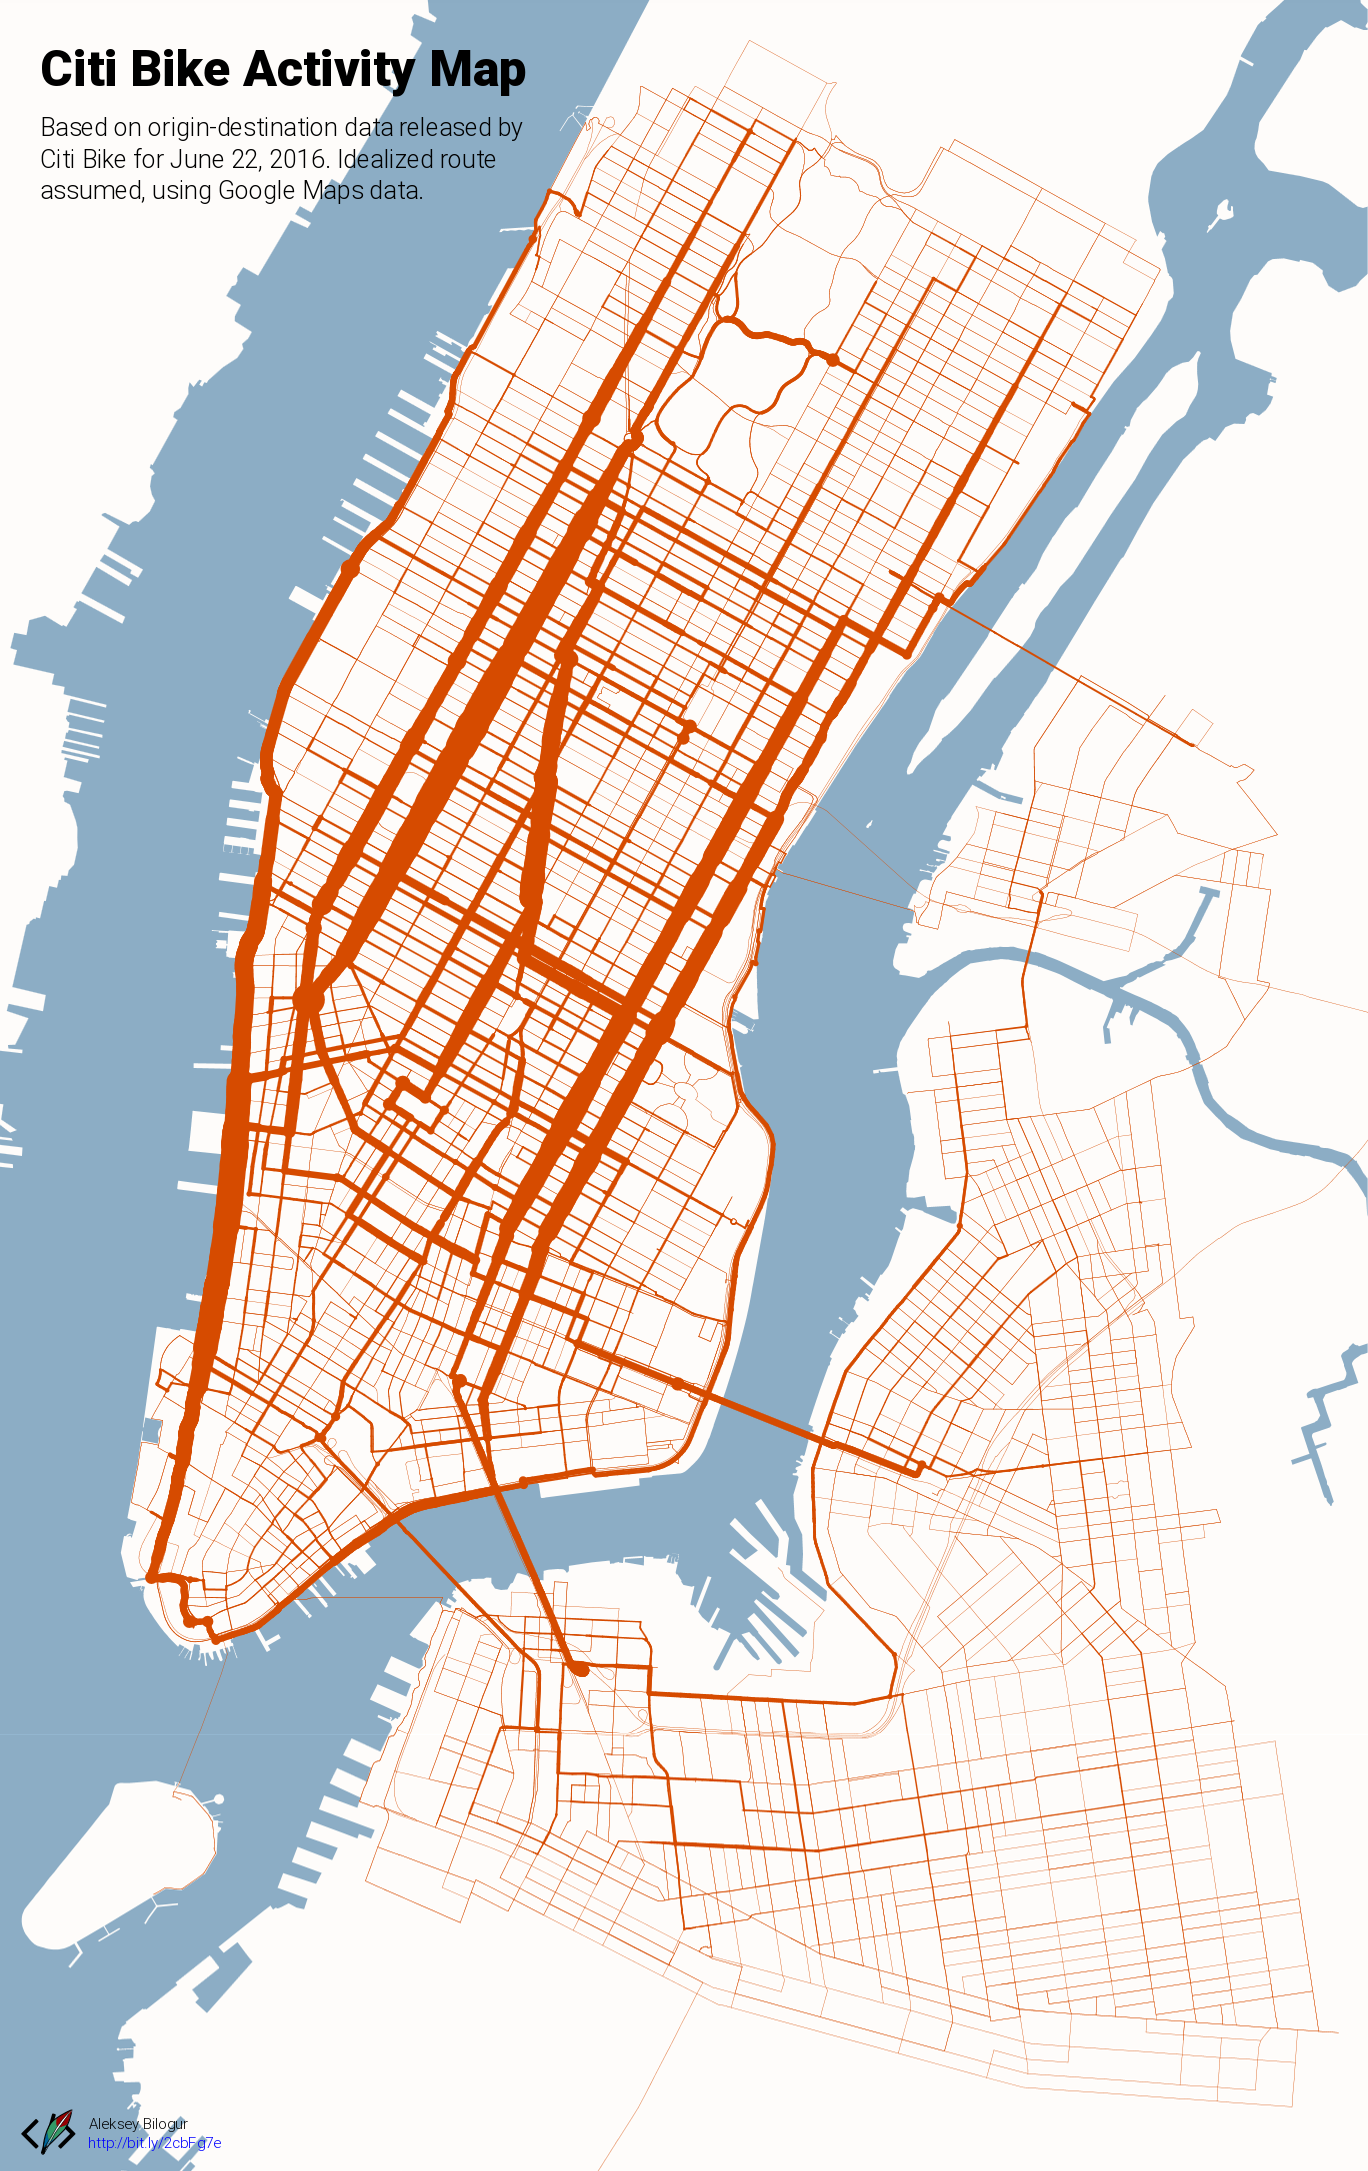 Citi Bike activity map [OC] : nyc Citibike Maps on nyc school district map, bronx zip code map, proof of success map, hubway map, nyc bus map, nyc train map,